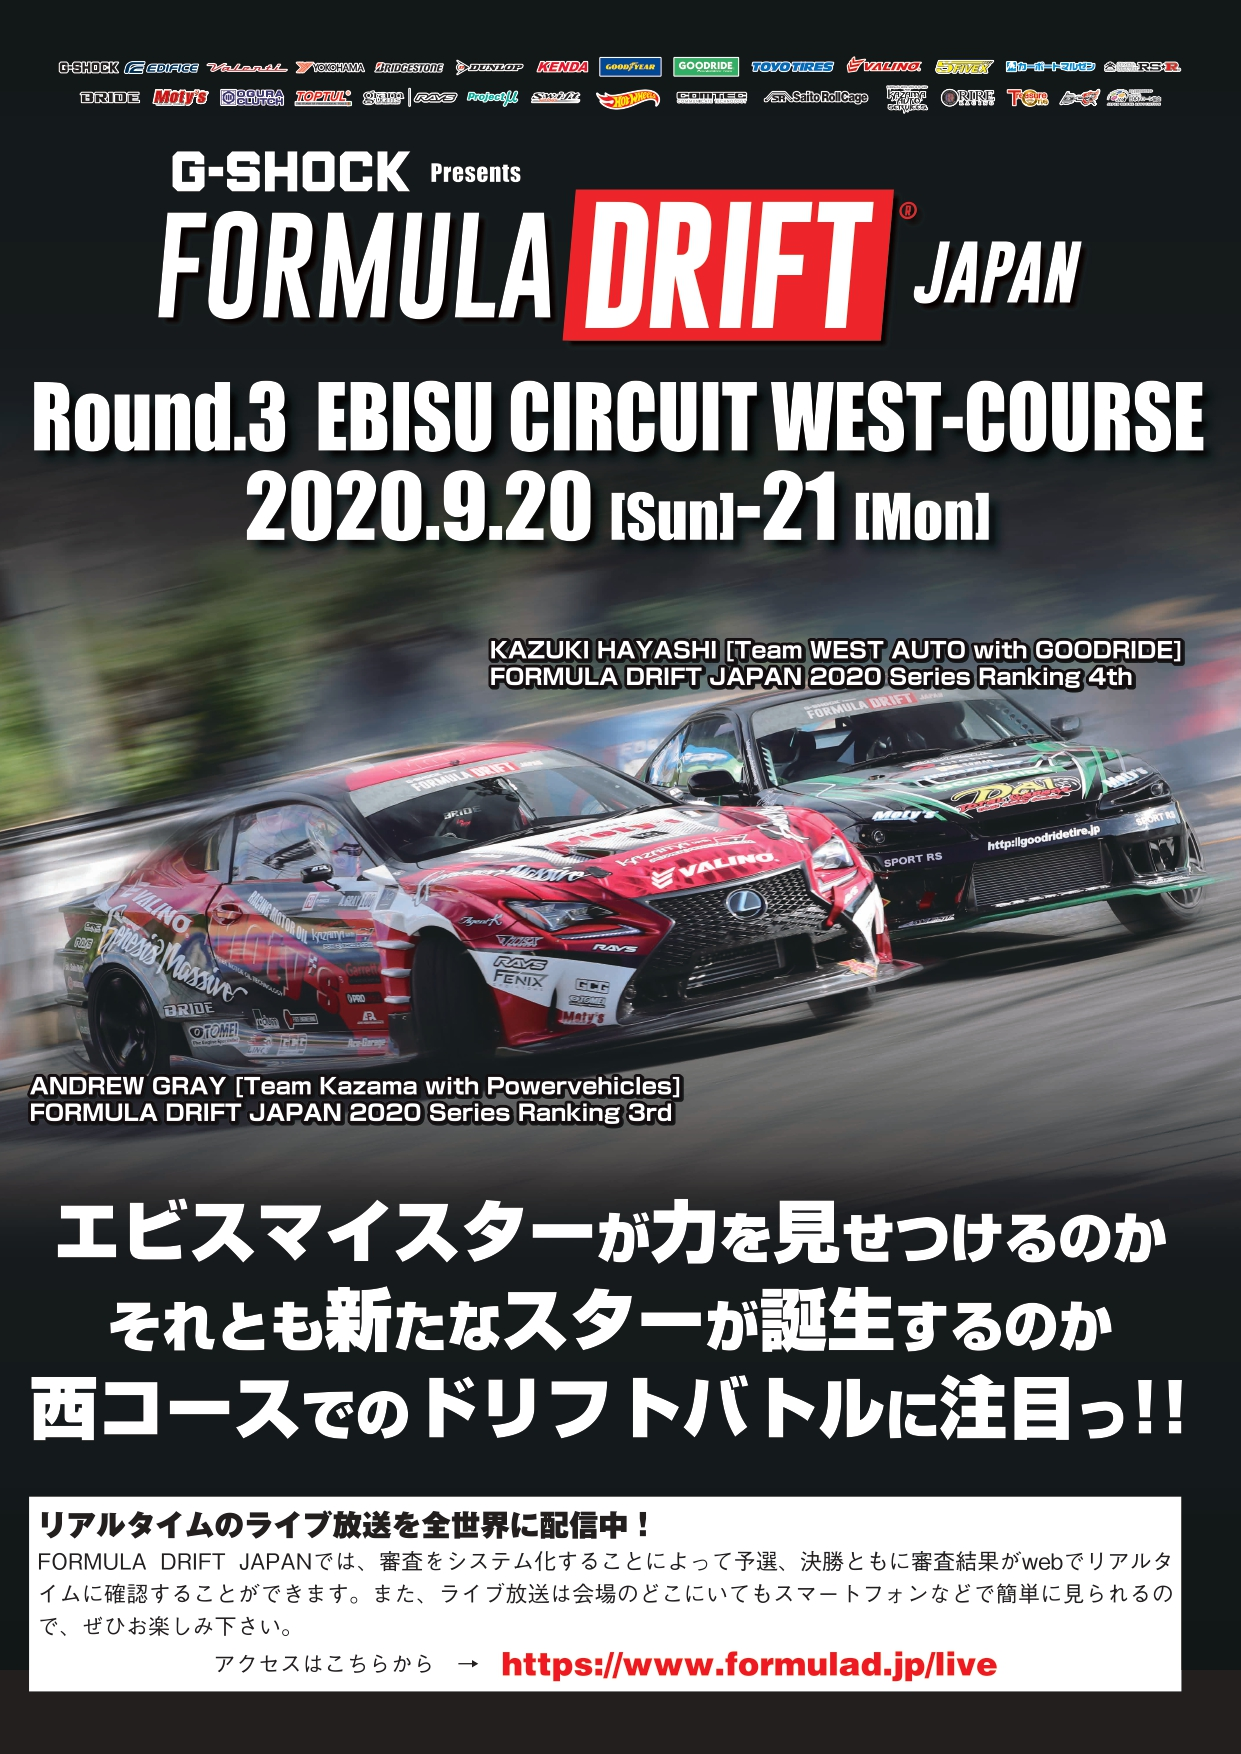 FORMULA DRIFT JAPAN – EBISU CIRCUIT WEST-COURSE (2020.9.20 / 21)